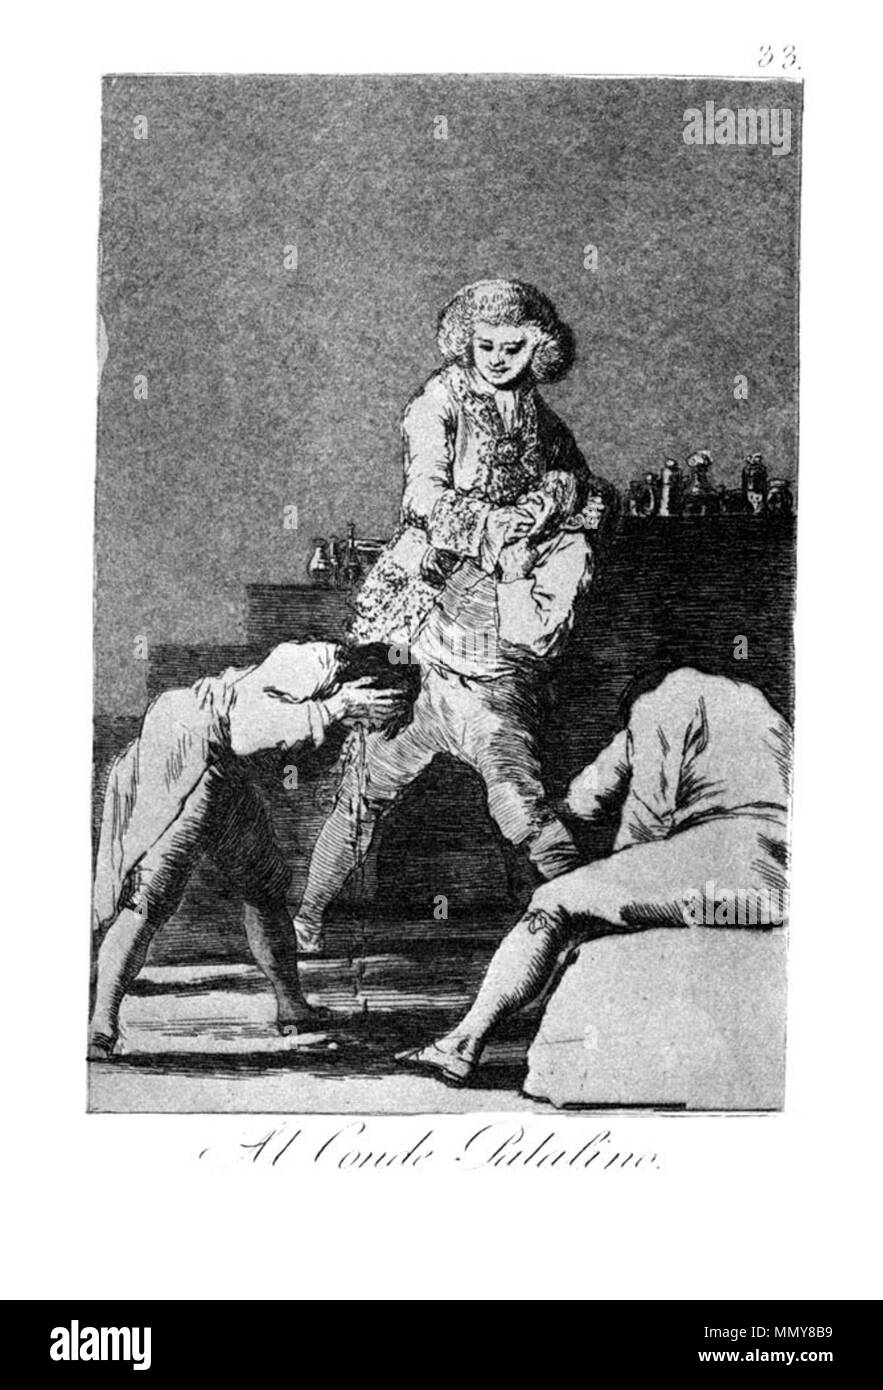 . Los Caprichos is a set of 80 aquatint prints created by Francisco Goya for release in 1799.  . 1799.   Francisco Goya (1746–1828)   Alternative names Francisco Goya Lucientes, Francisco de Goya y Lucientes, Francisco José Goya Lucientes  Description Spanish painter, printmaker, lithographer, engraver and etcher  Date of birth/death 30 March 1746 16 April 1828  Location of birth/death Fuendetodos Bordeaux  Work location Madrid, Zaragoza, Bordeaux  Authority control  : Q5432 VIAF:?54343141 ISNI:?0000 0001 2280 1608 ULAN:?500118936 LCCN:?n79003363 NLA:?36545788 WorldCat Goya - Caprichos (33 - Stock Image